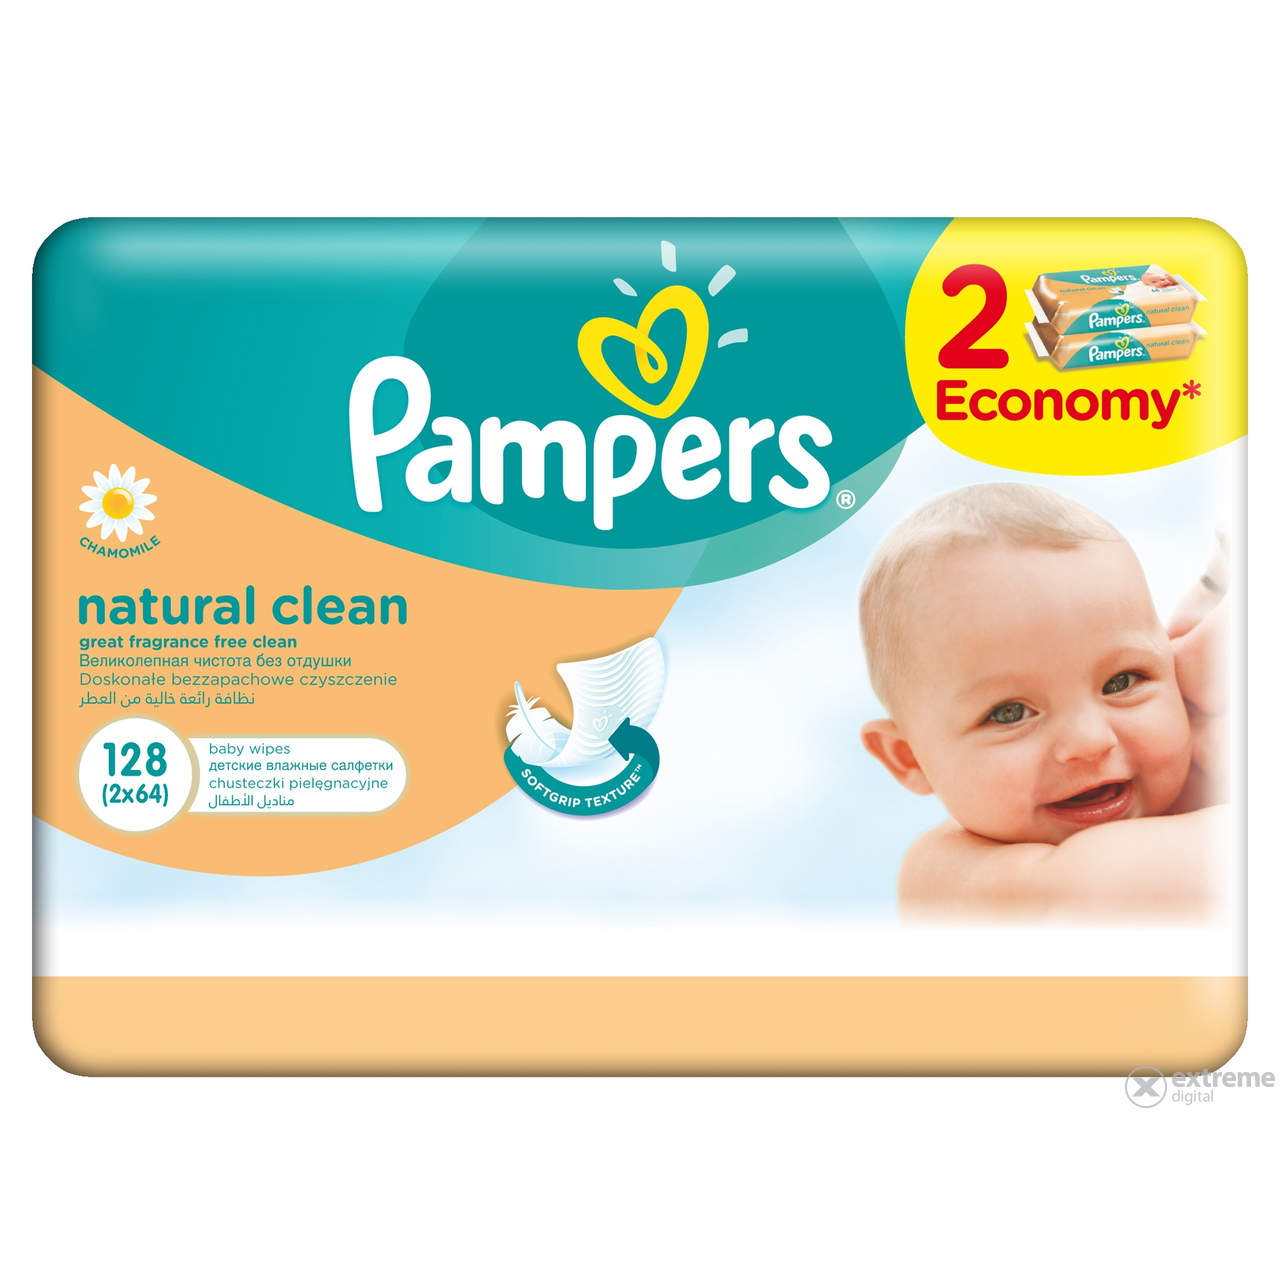 pampers-natural-clean-baba-torlo_6a9ff32f.jpg